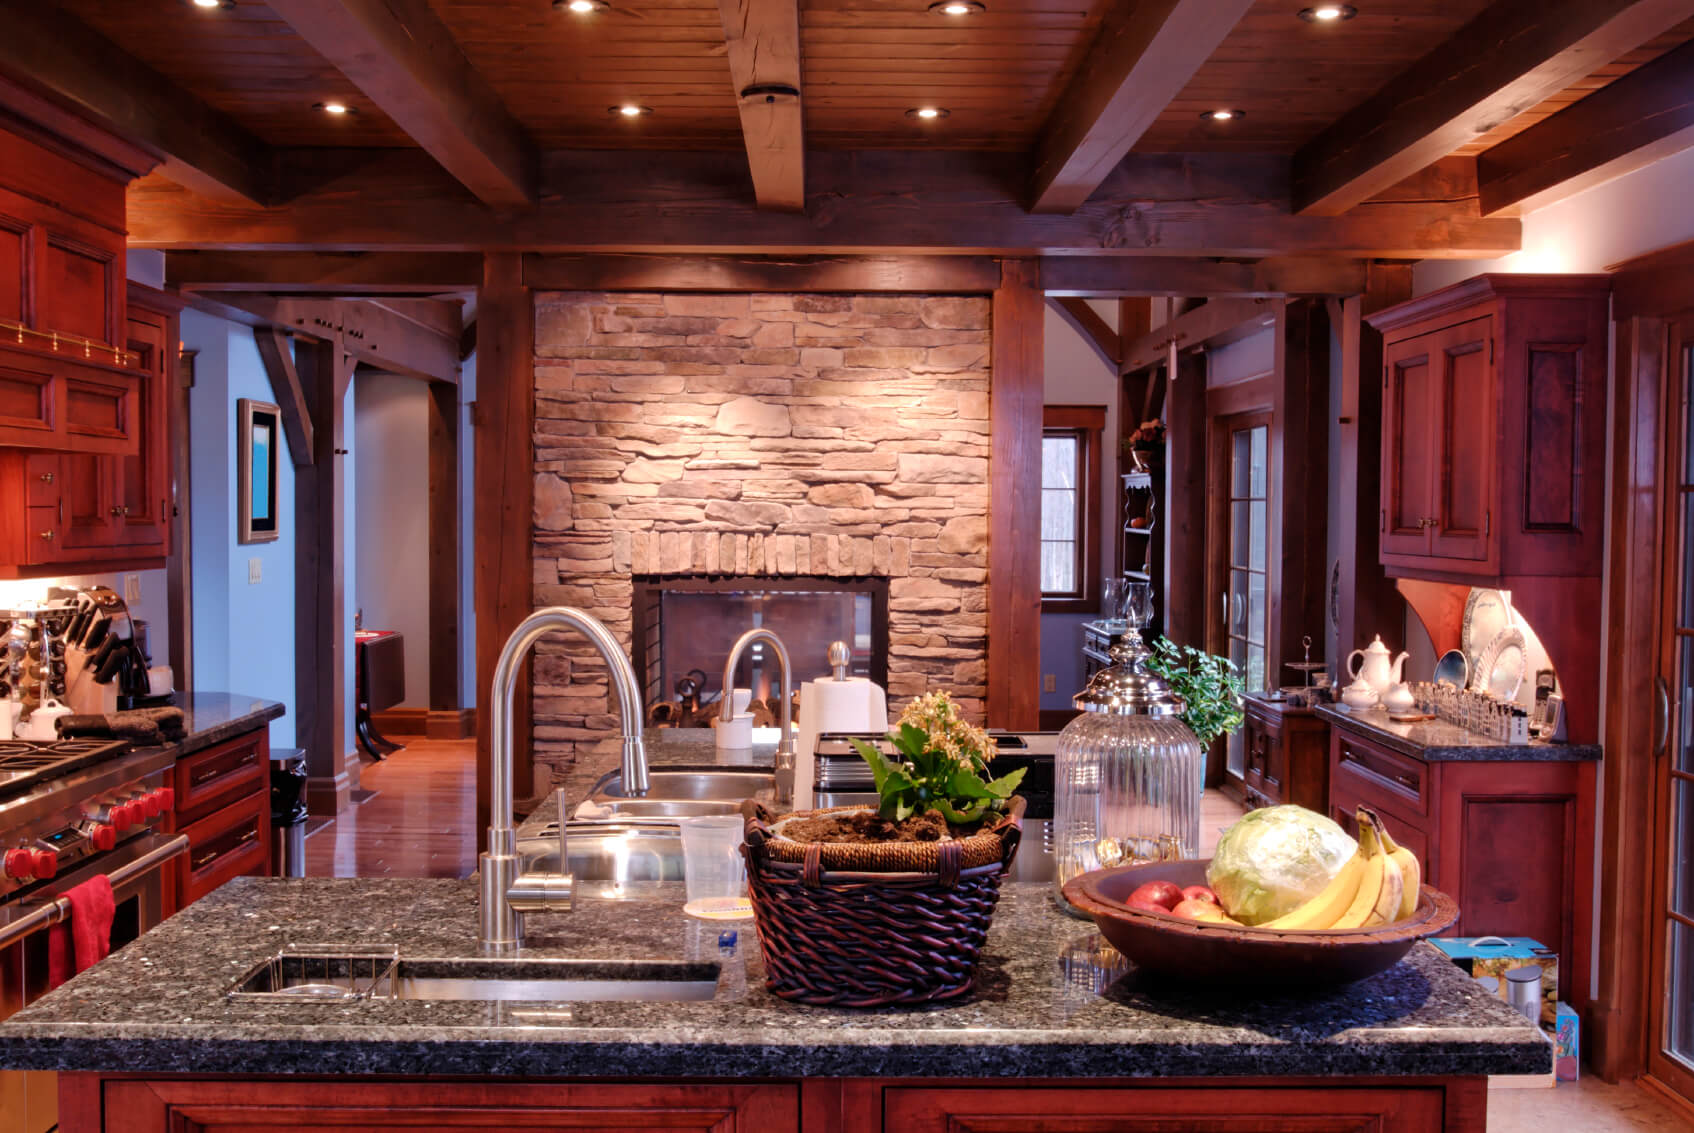 Here we see the prior rustic look kitchen at night time, with embedded light highlighting cherry wood tones.